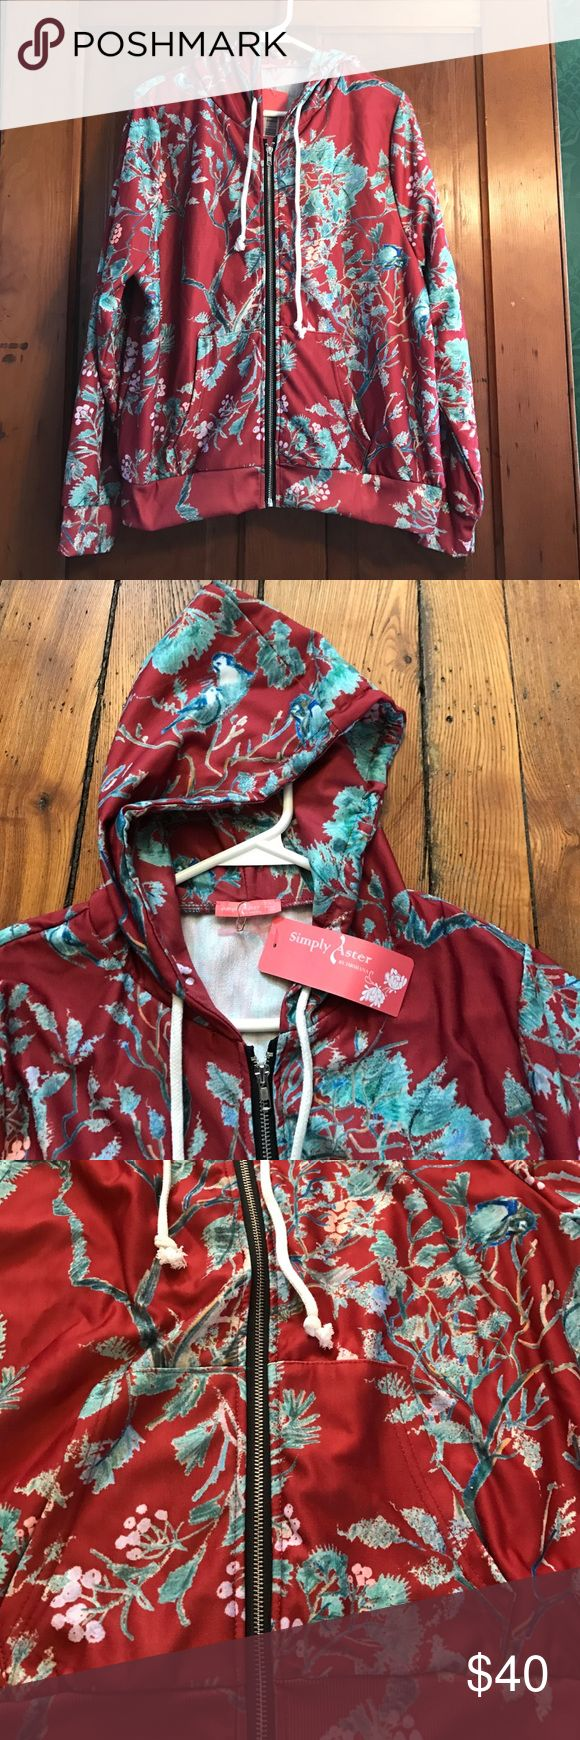 Red Floral Zip Up Hoodie NWT Soft, comfy, chic hoodie Simply Aster Tops Sweatshirts & Hoodies